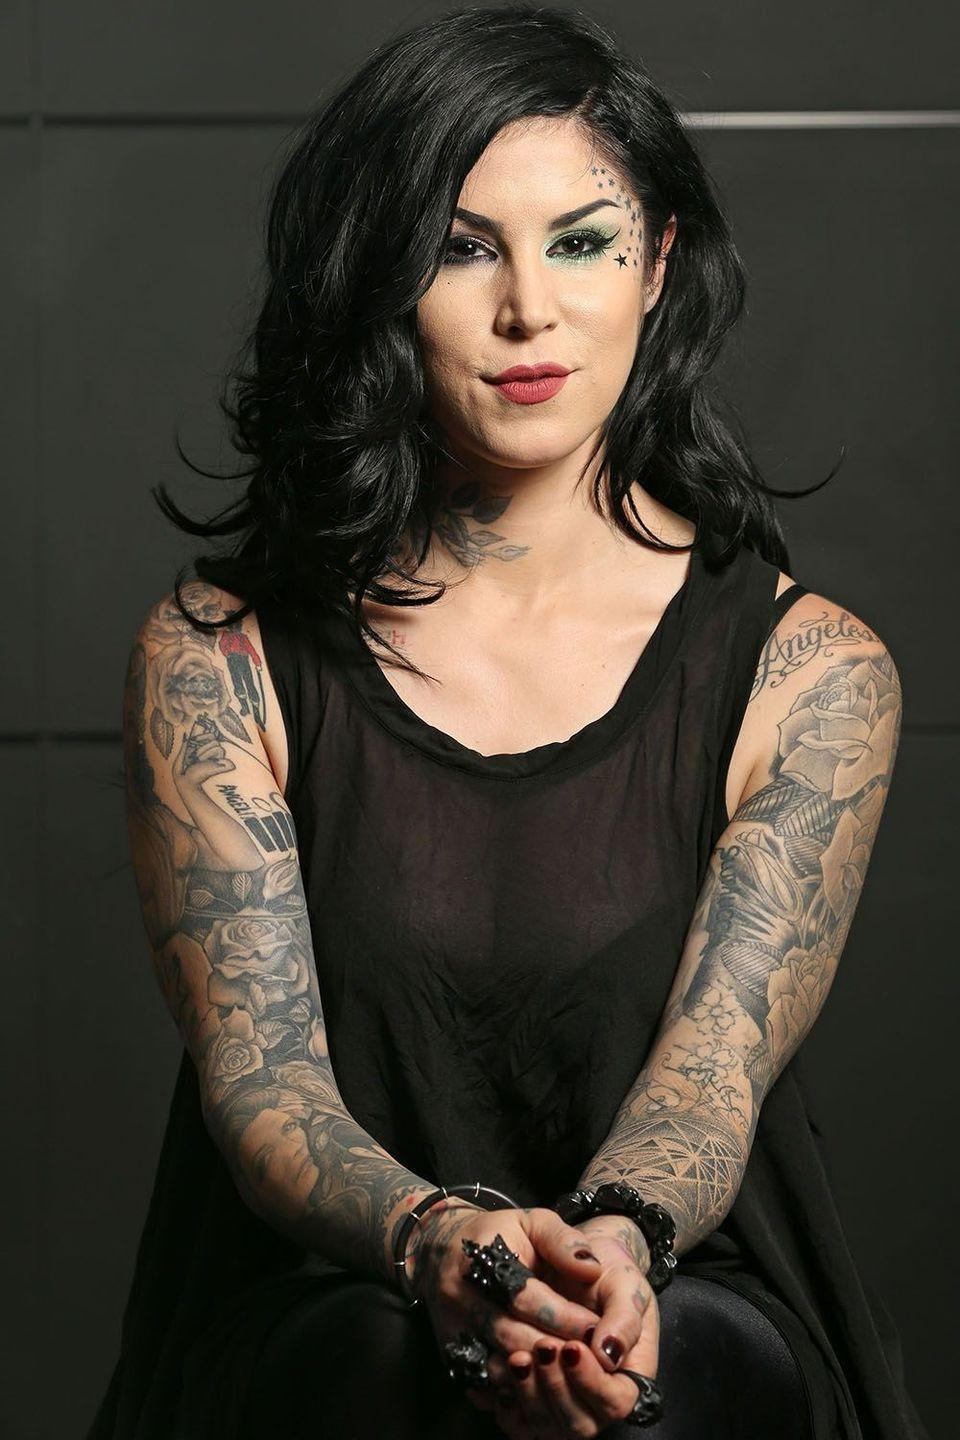 """<p>The famed tattoo artist and now beauty business woman announced her continued sobriety after years of drug and alcohol abuse with a celebratory <a href=""""https://www.instagram.com/p/BWQn_T4AbBN/"""" rel=""""nofollow noopener"""" target=""""_blank"""" data-ylk=""""slk:Instagram"""" class=""""link rapid-noclick-resp"""">Instagram</a> post this past July.</p>"""